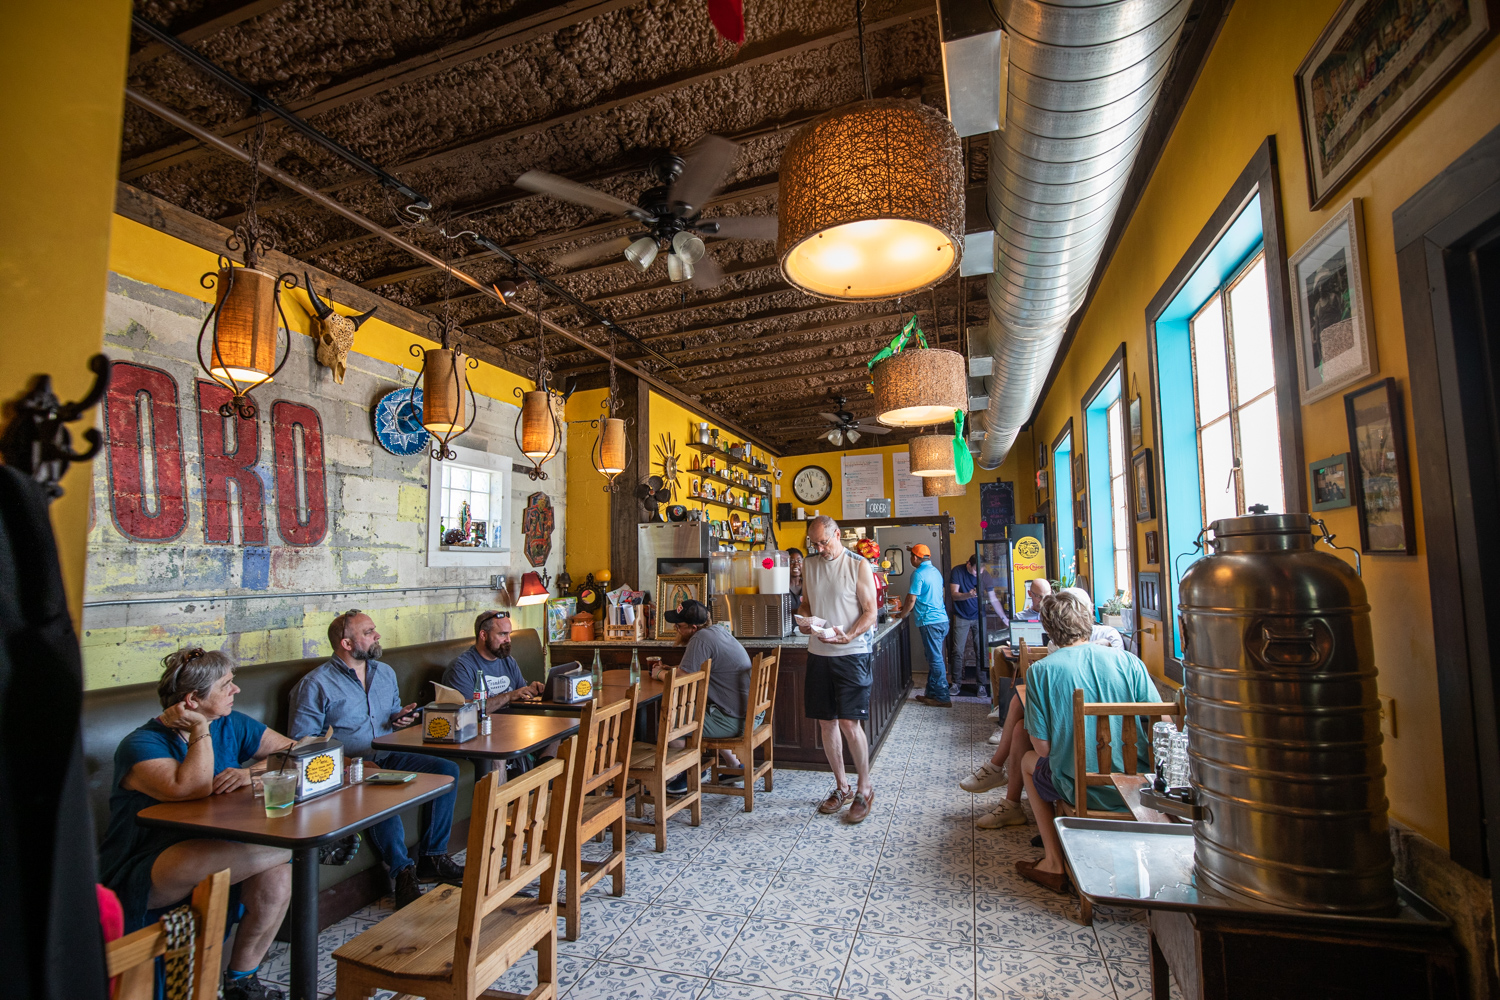 Interior of El Tesoro. Fresh tacos are being served.